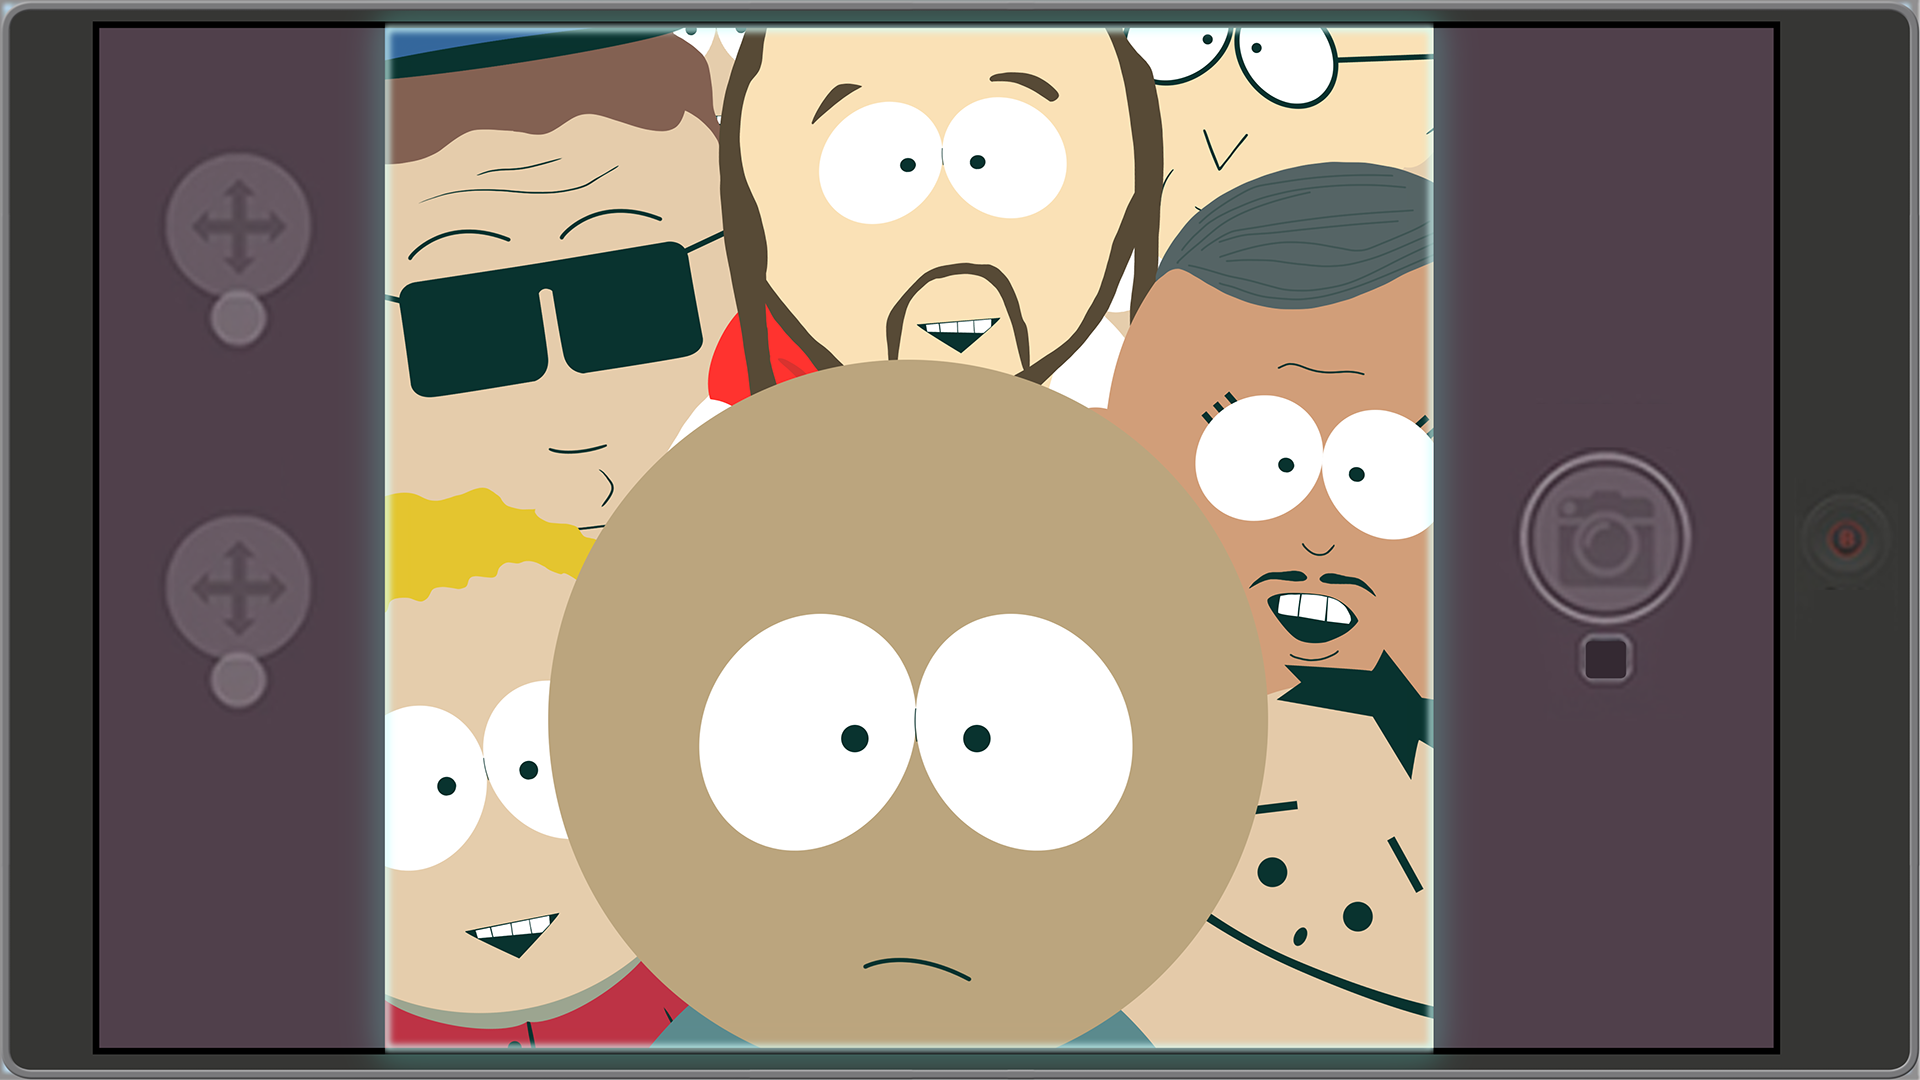 #followbacks achievement for South Park: The Fractured but Whole on Xbox One